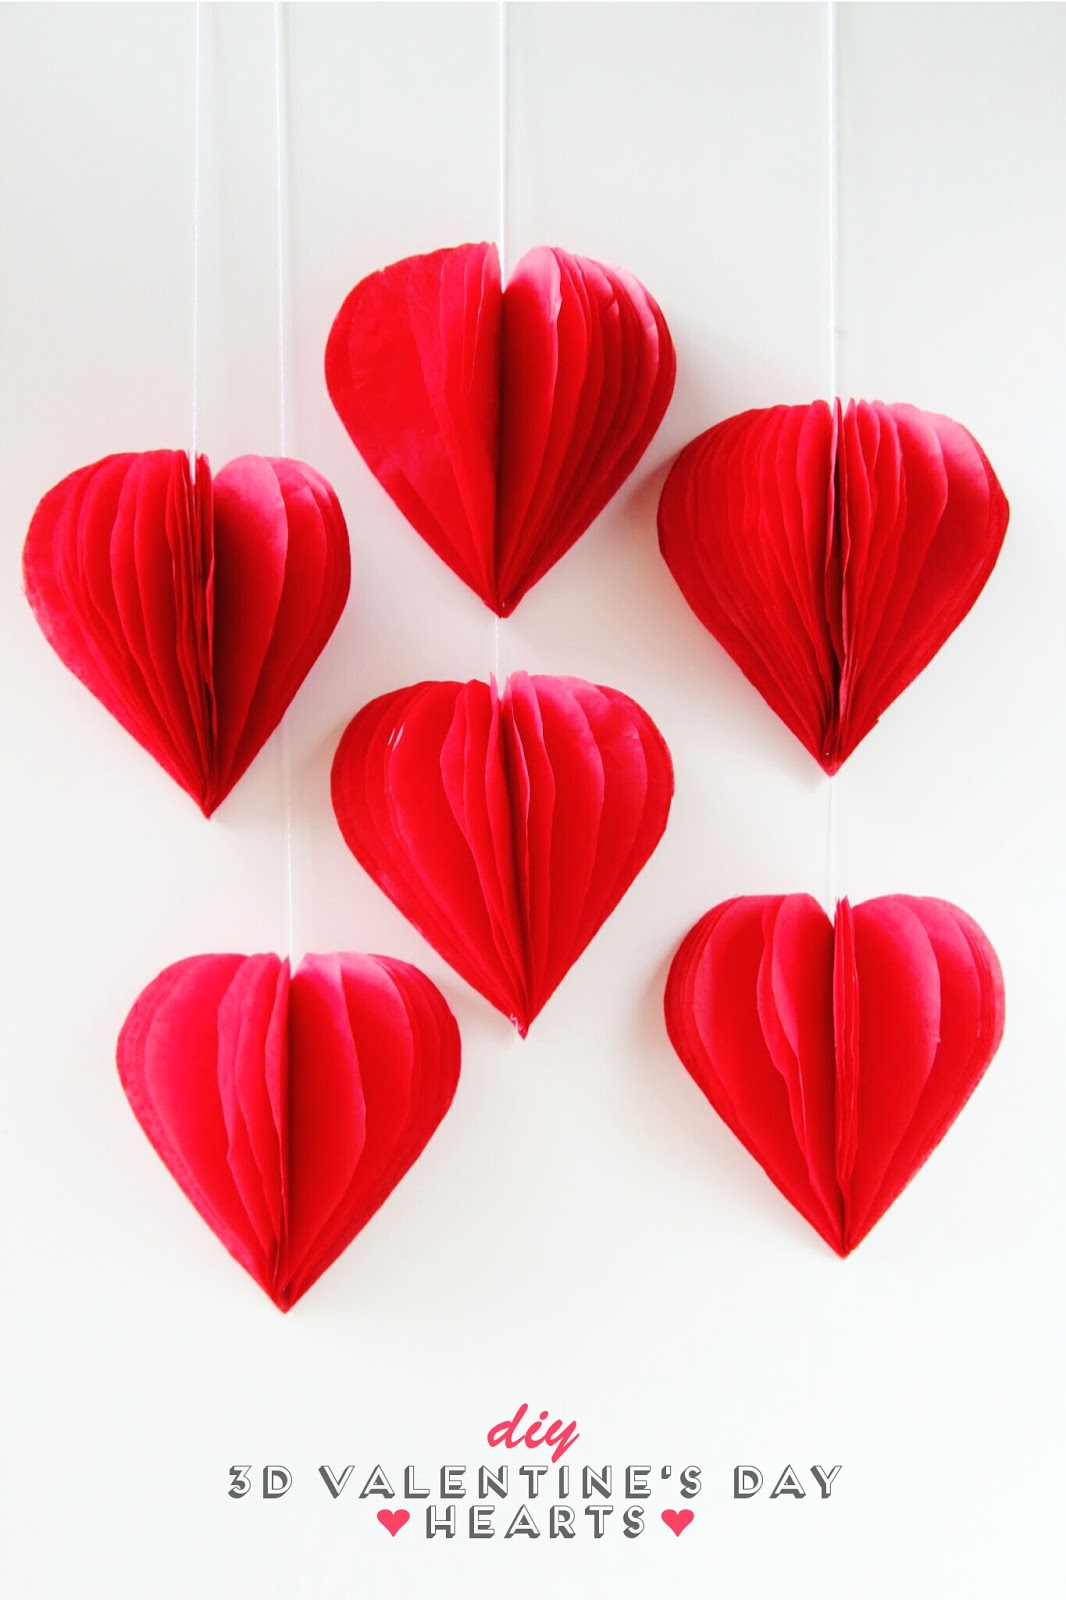 Diy 3D Valentine's Day Tissue Paper Heart Decorations